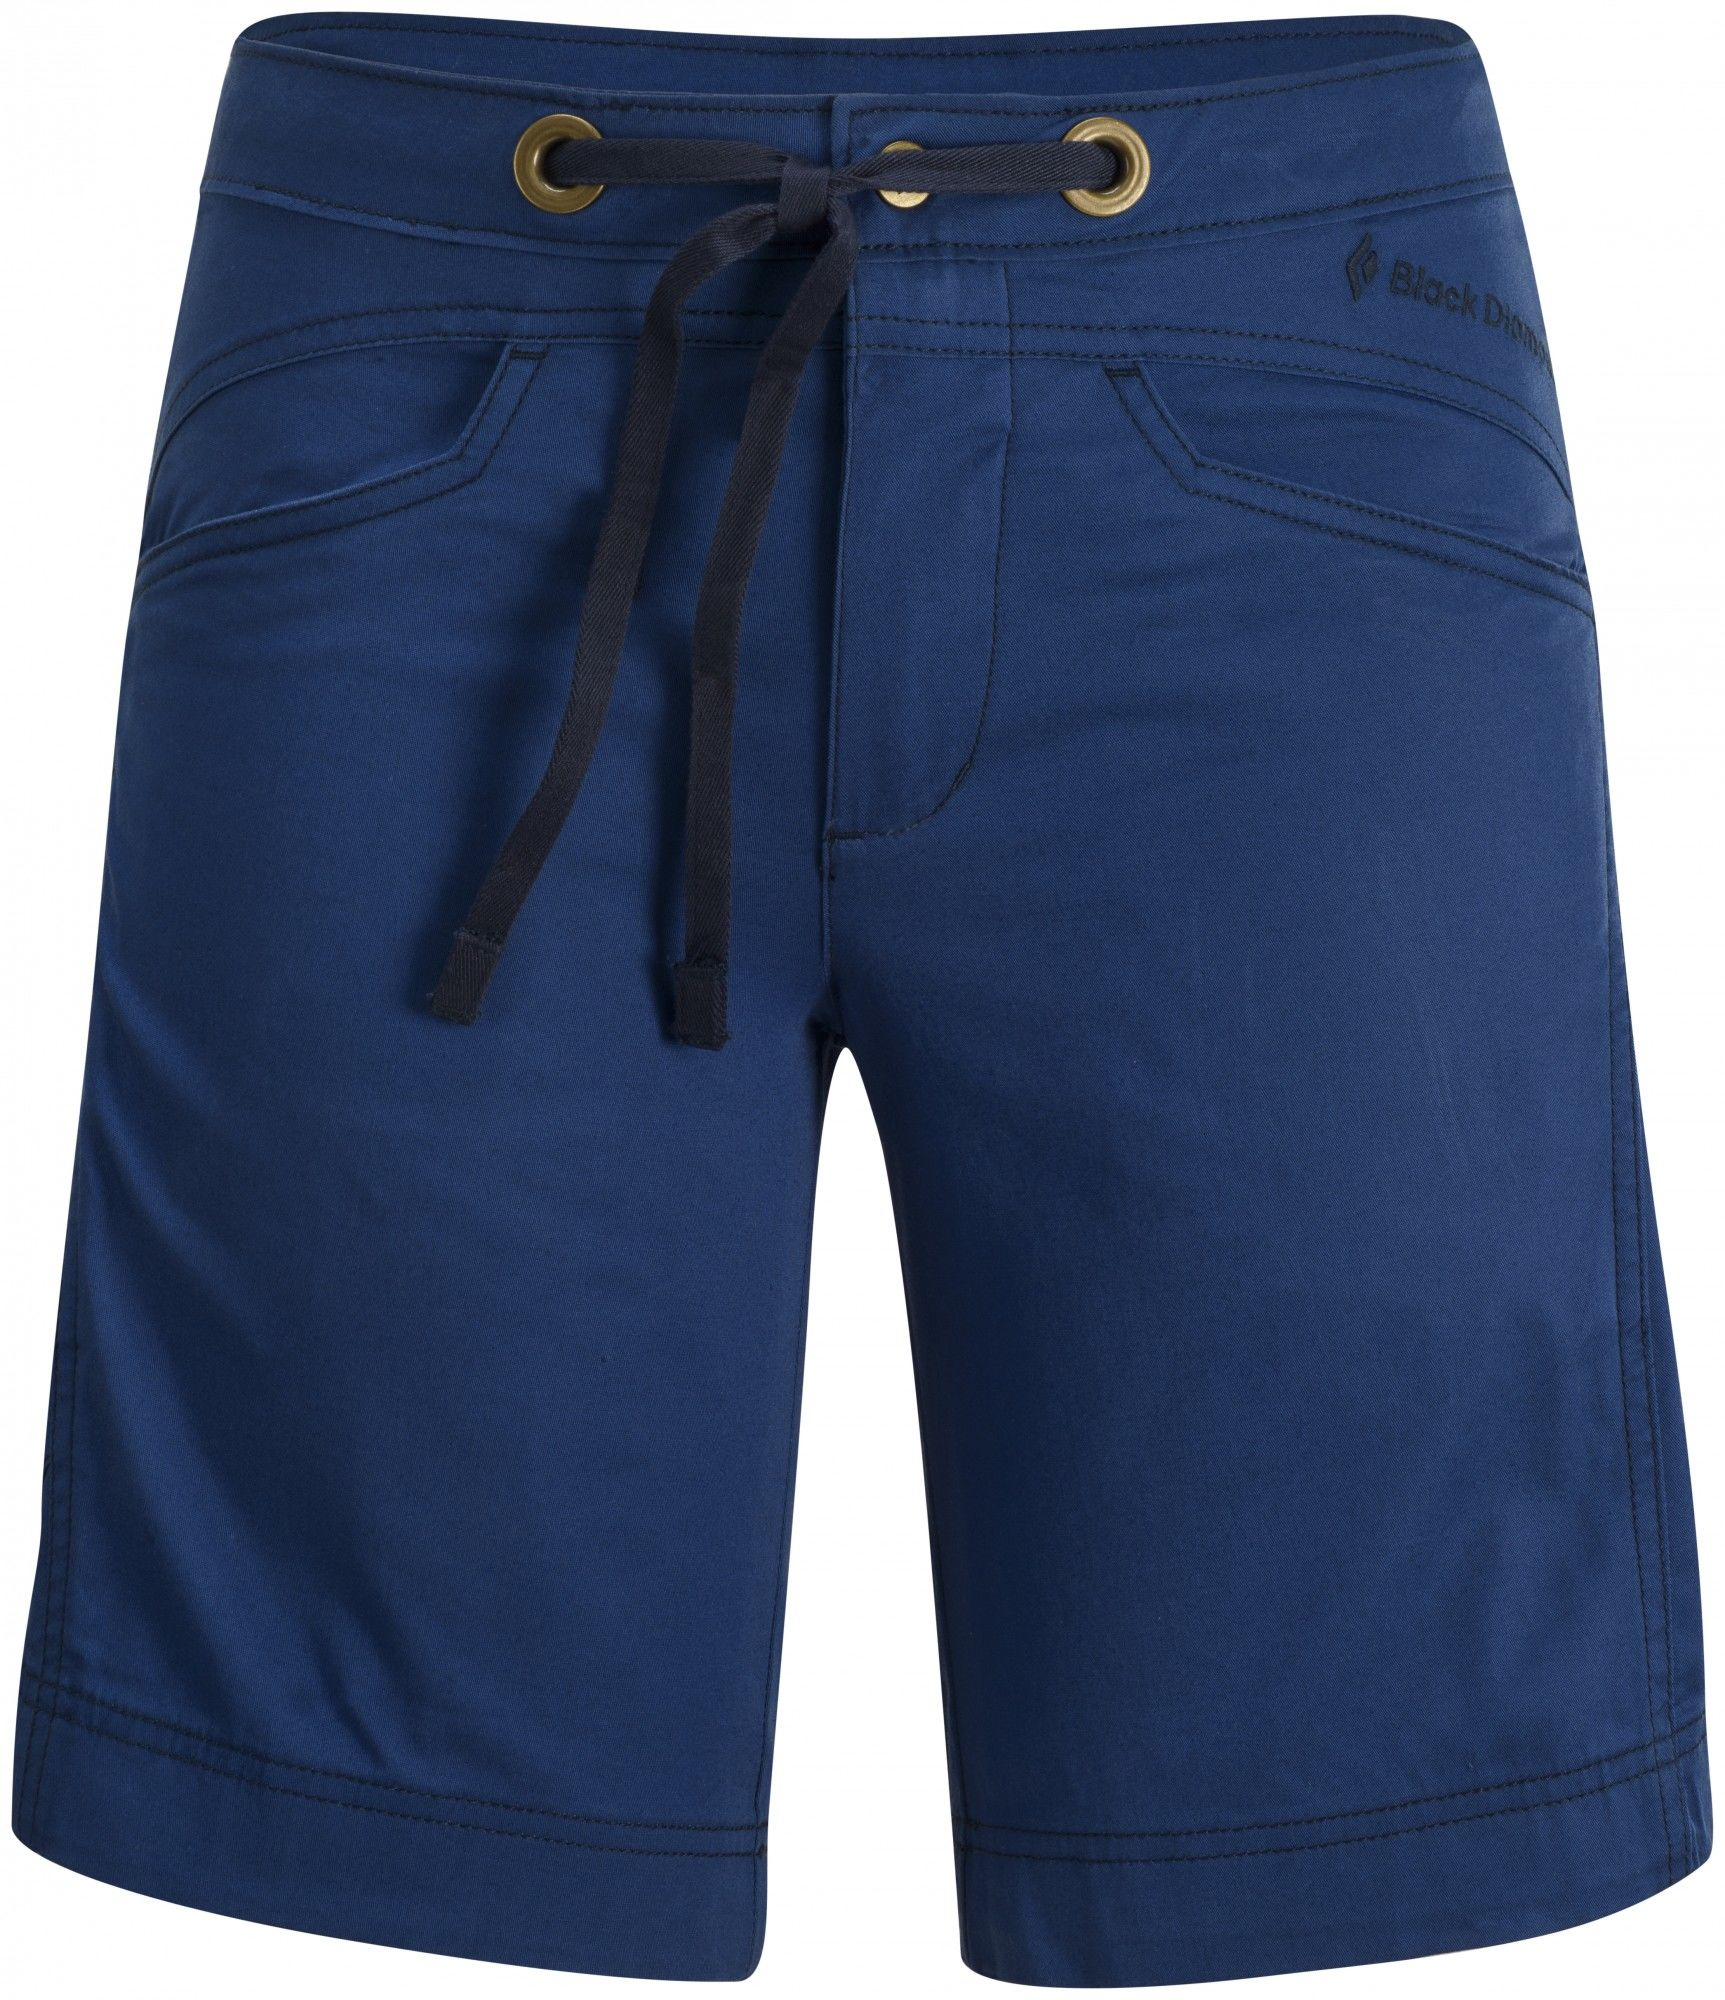 Black Diamond Credo Shorts Blau, Female Shorts, 10